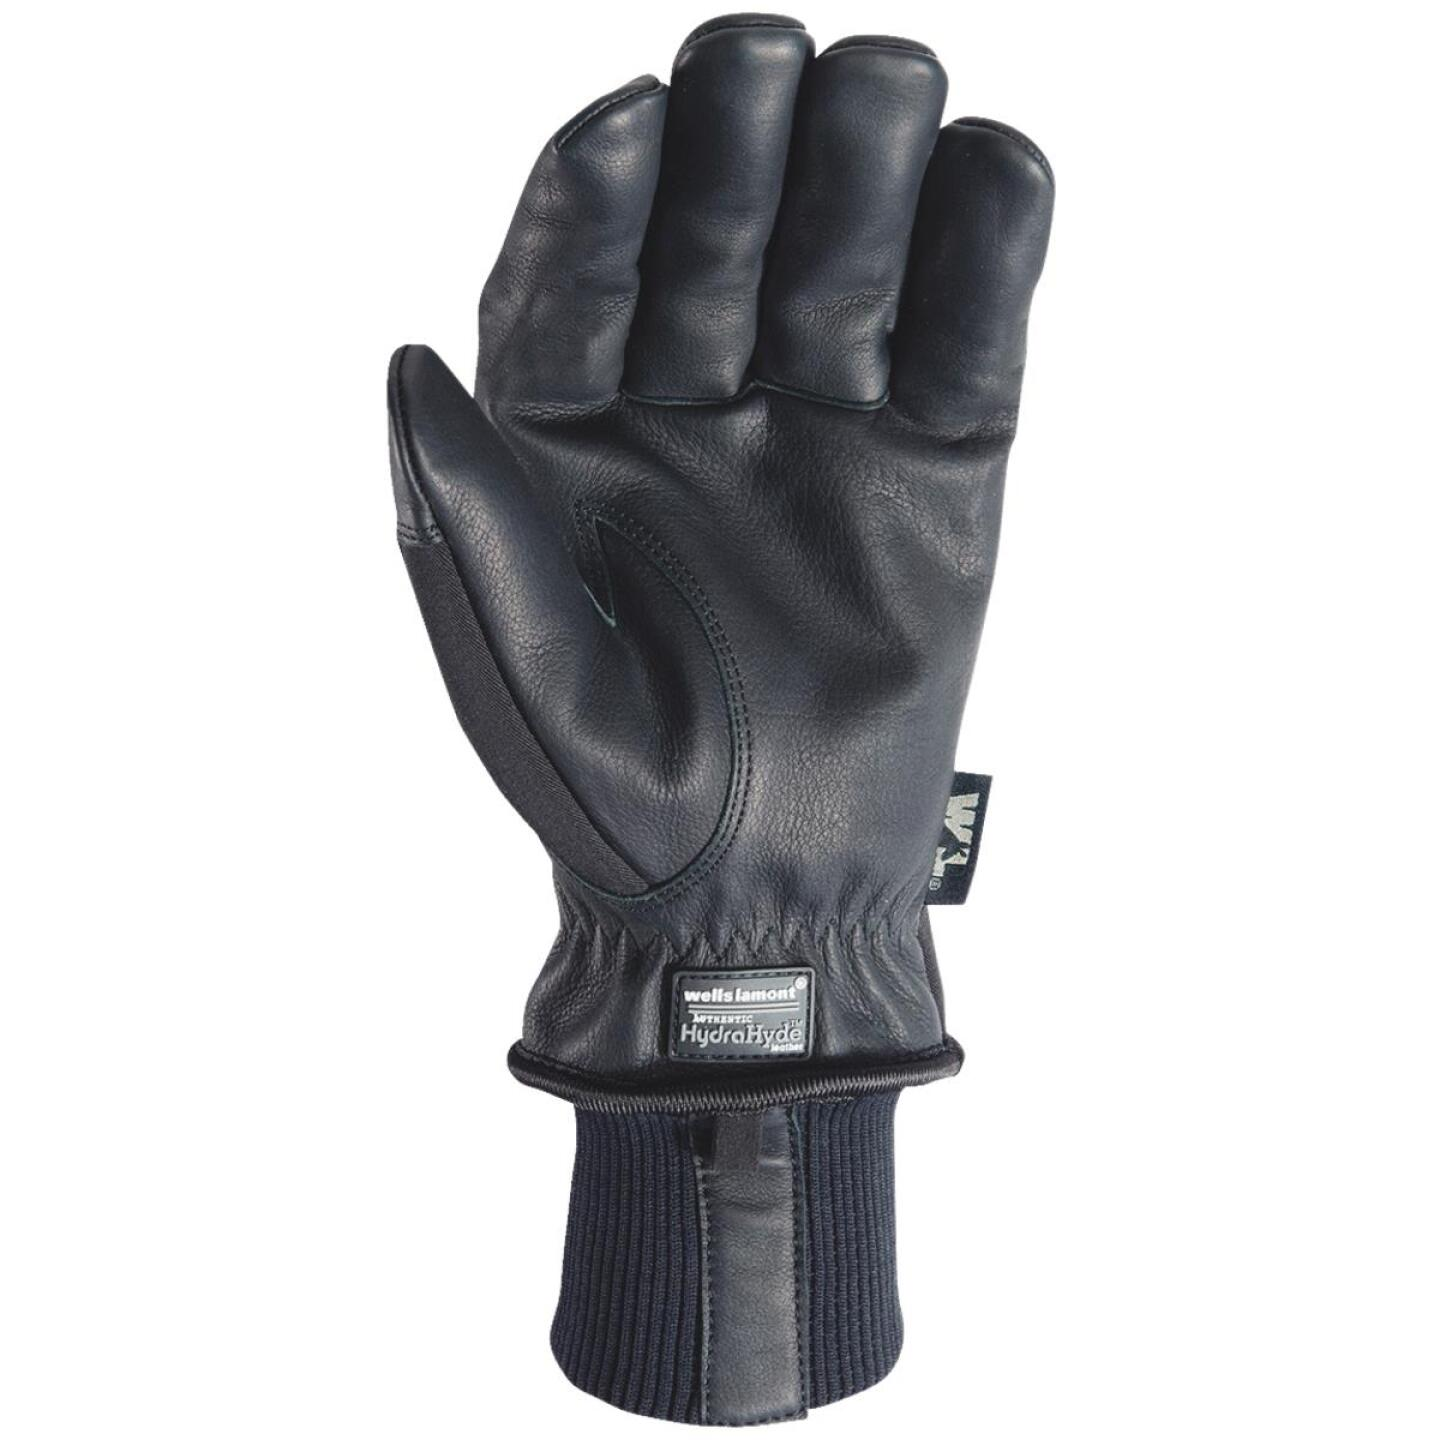 Wells Lamont HydraHyde Men's XL Grain Goatskin Black Insulated Work Glove Image 2